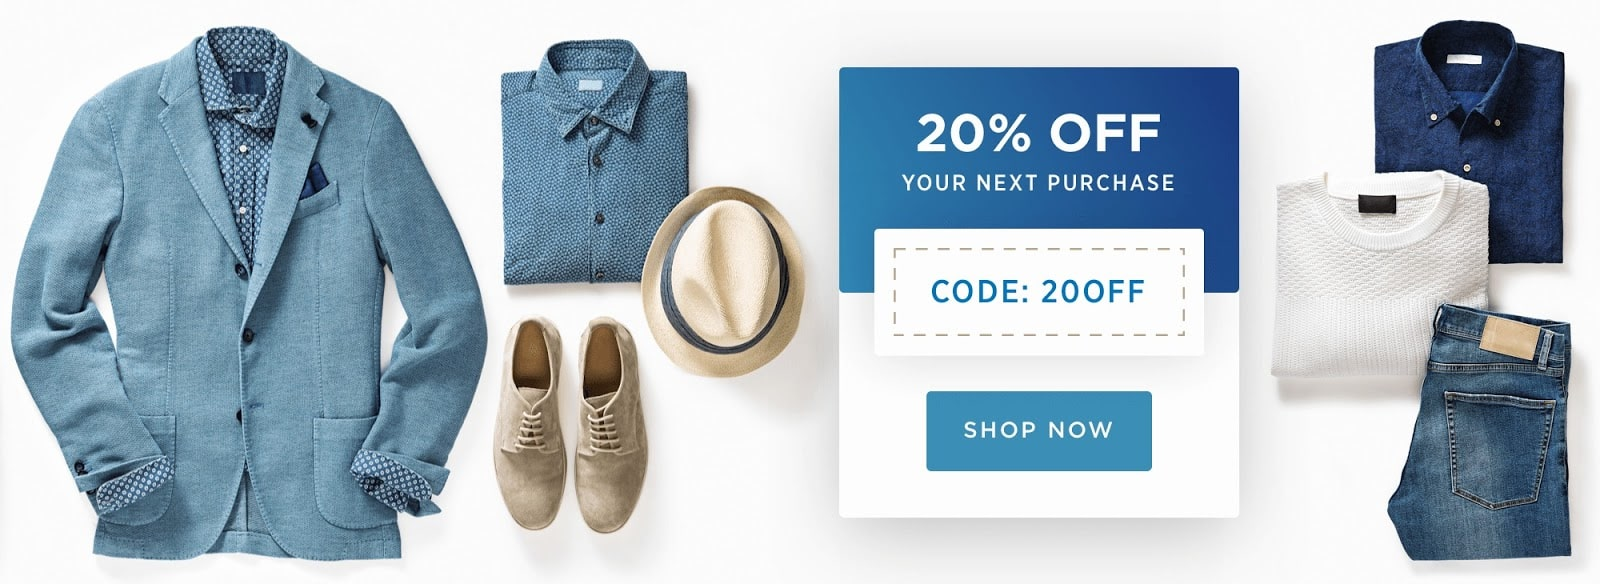 Clothing Coupons and Promo Codes for 2021